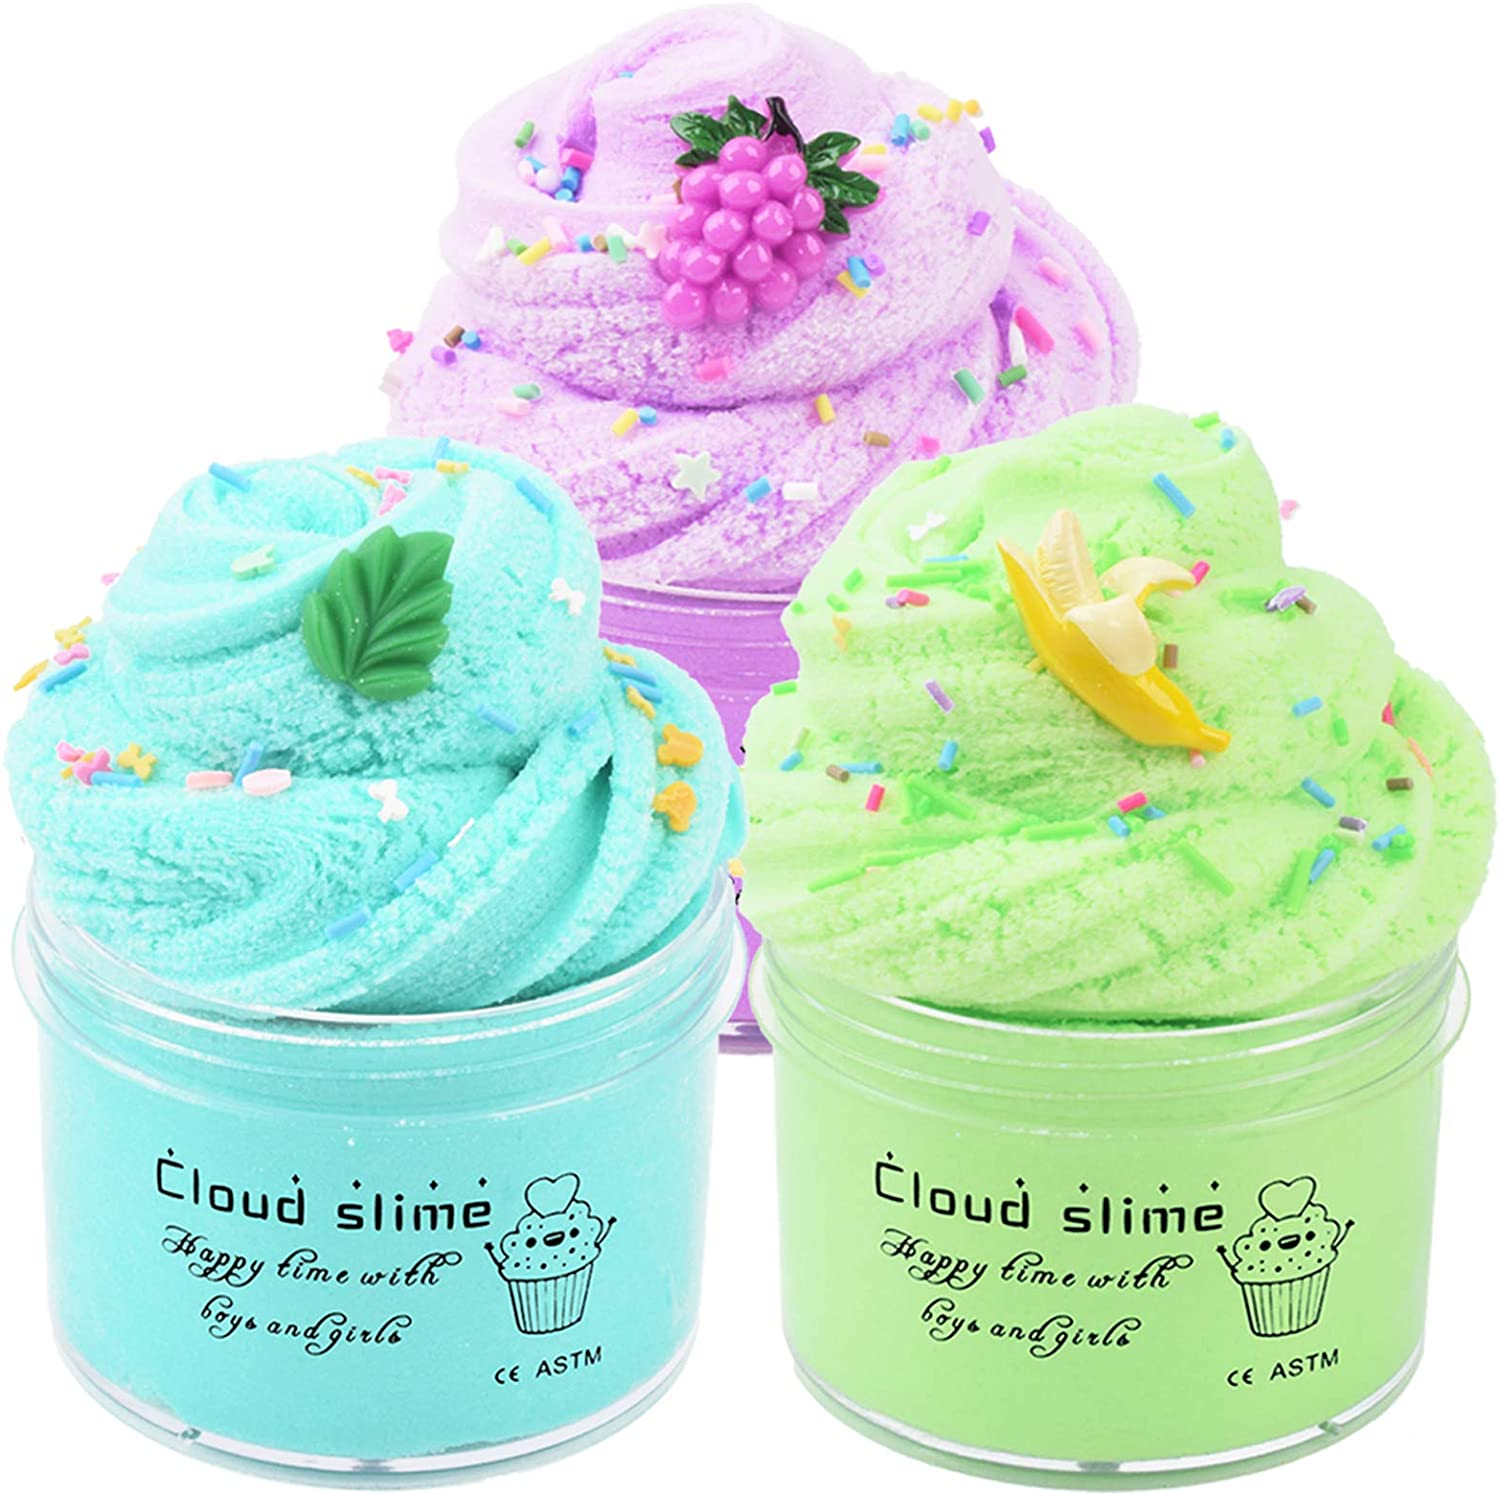 Fruit Cloud Slime Kit 3 Pack with Grape Slime, Banana Slime and Mint Slime, Super Soft Putty Non-Sticky Sludge Toys, Birthday Gifts Kids Party Favors for Girls and Boys